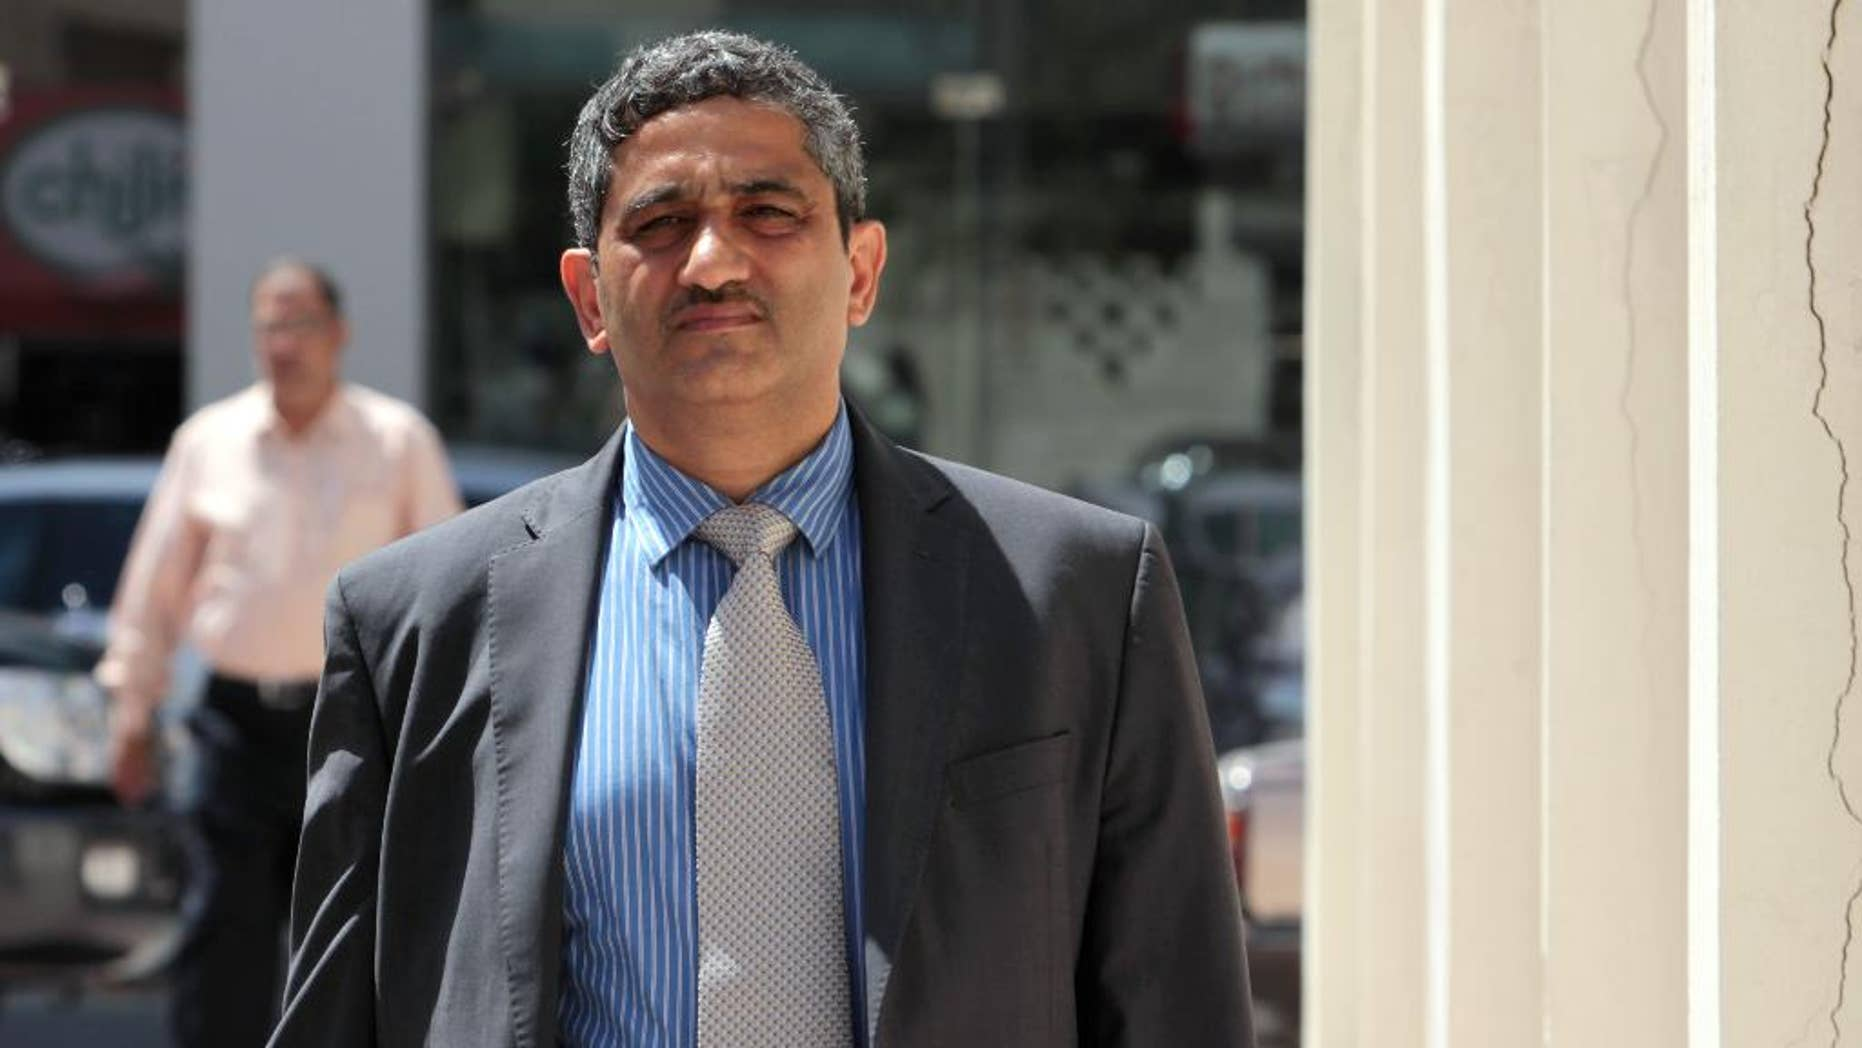 """FILE - In this May 18, 2011, file photo, Mansour al-Jamri, former chief editor of the Bahraini opposition newspaper Al Wasat, arrives at the courthouse in Manama, Bahrain. The official Bahrain News Agency said in a brief statement issued Thursday, Aug. 6, 2015, that the suspension of the publication of the independent newspaper Al-Wasat. is """"due to its violation of the law and repeated dissemination of information that affects national unity and the Kingdom's relationship with other countries."""" (AP Photo/Hasan Jamali, File)"""